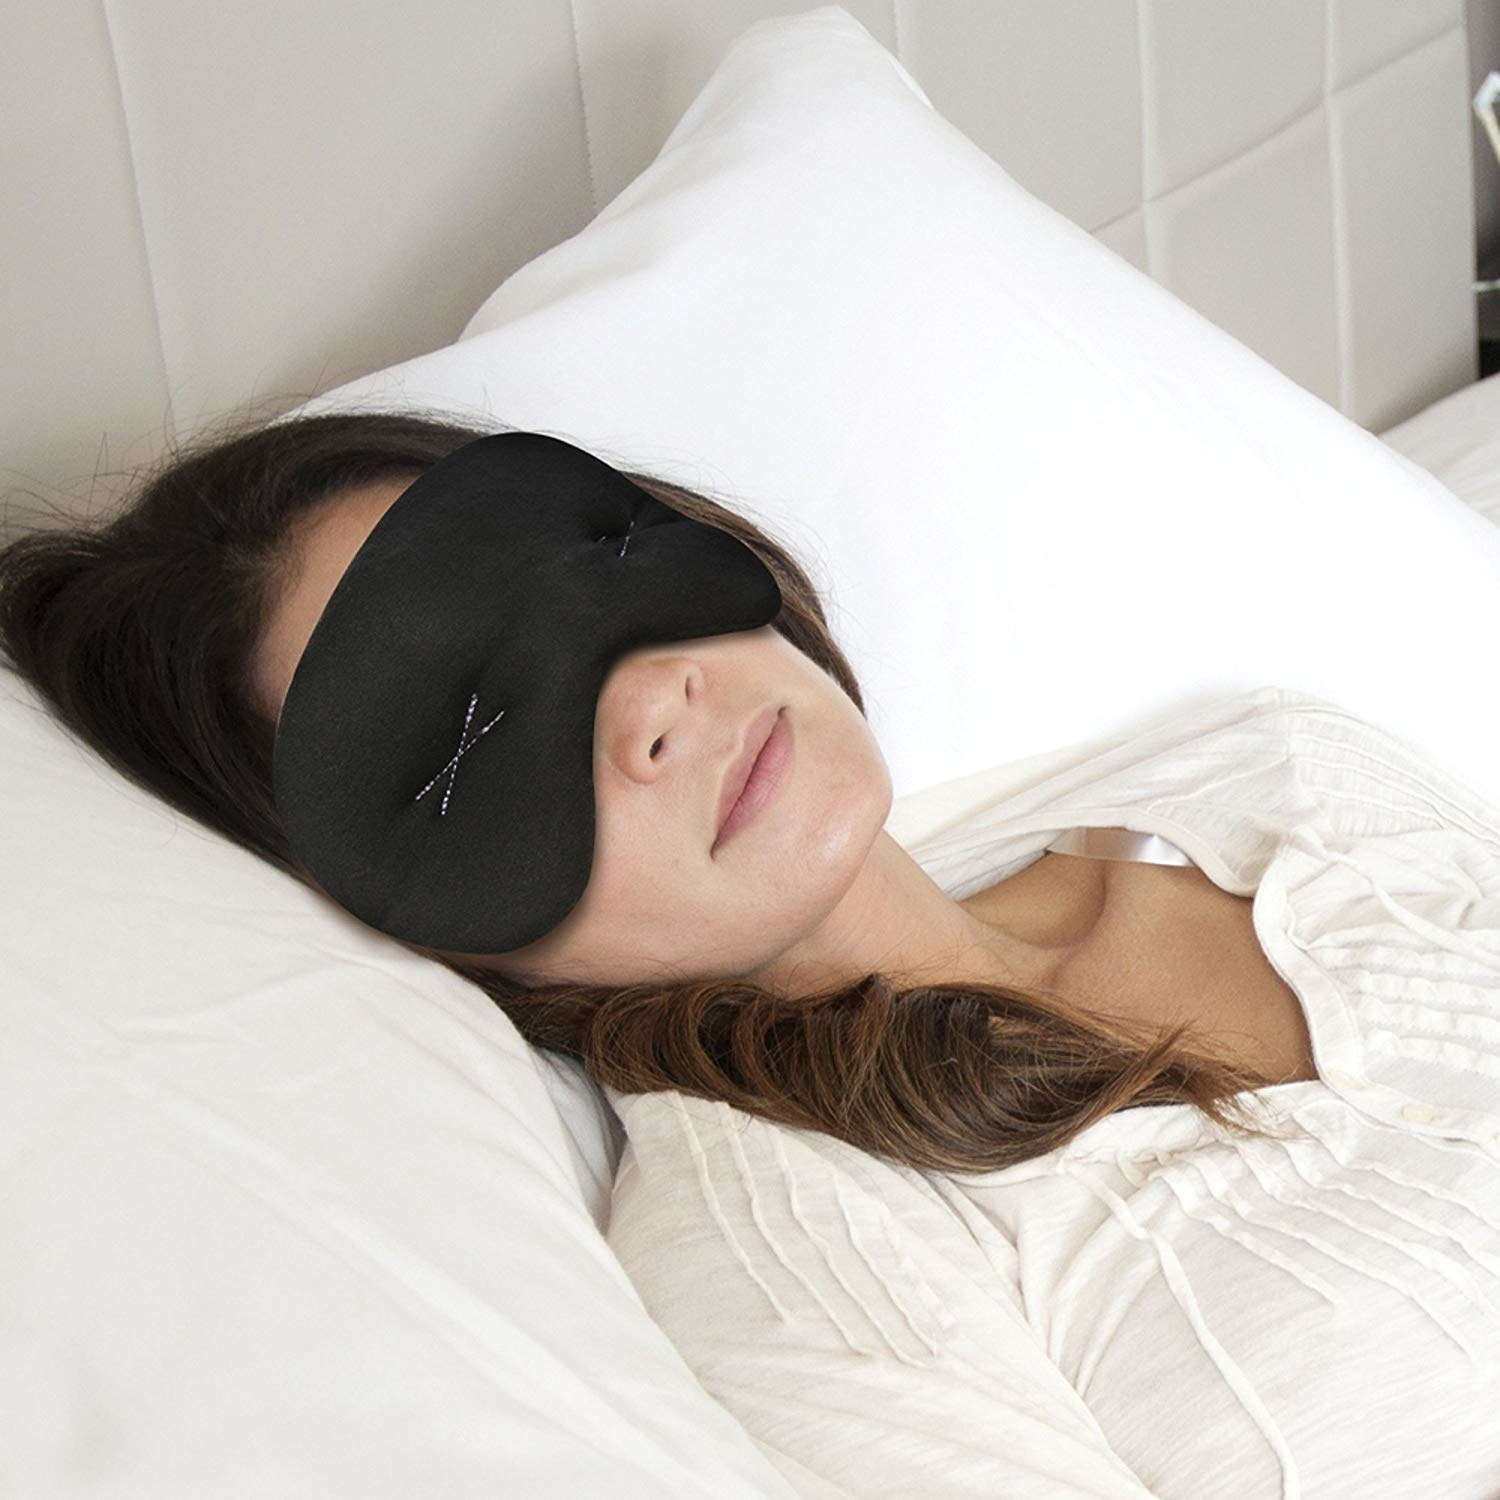 A person wearing the Compression Pain Relief Mask while they sleep.